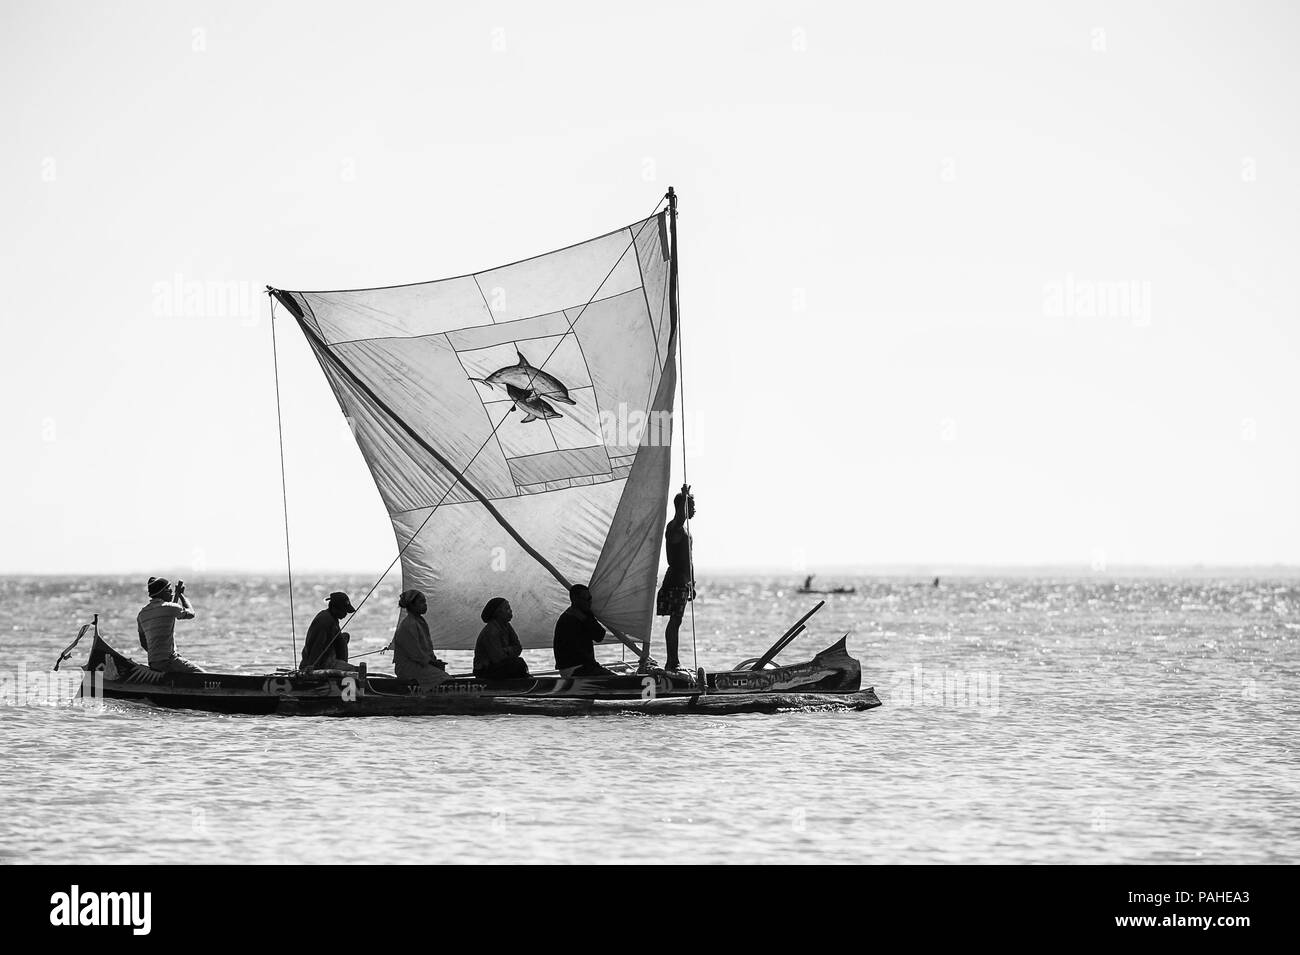 ANTANANARIVO, MADAGASCAR - JULY 3, 2011: Unidentified Madagascar people on a small boat. People in Madagascar suffer of poverty due to slow developmen - Stock Image